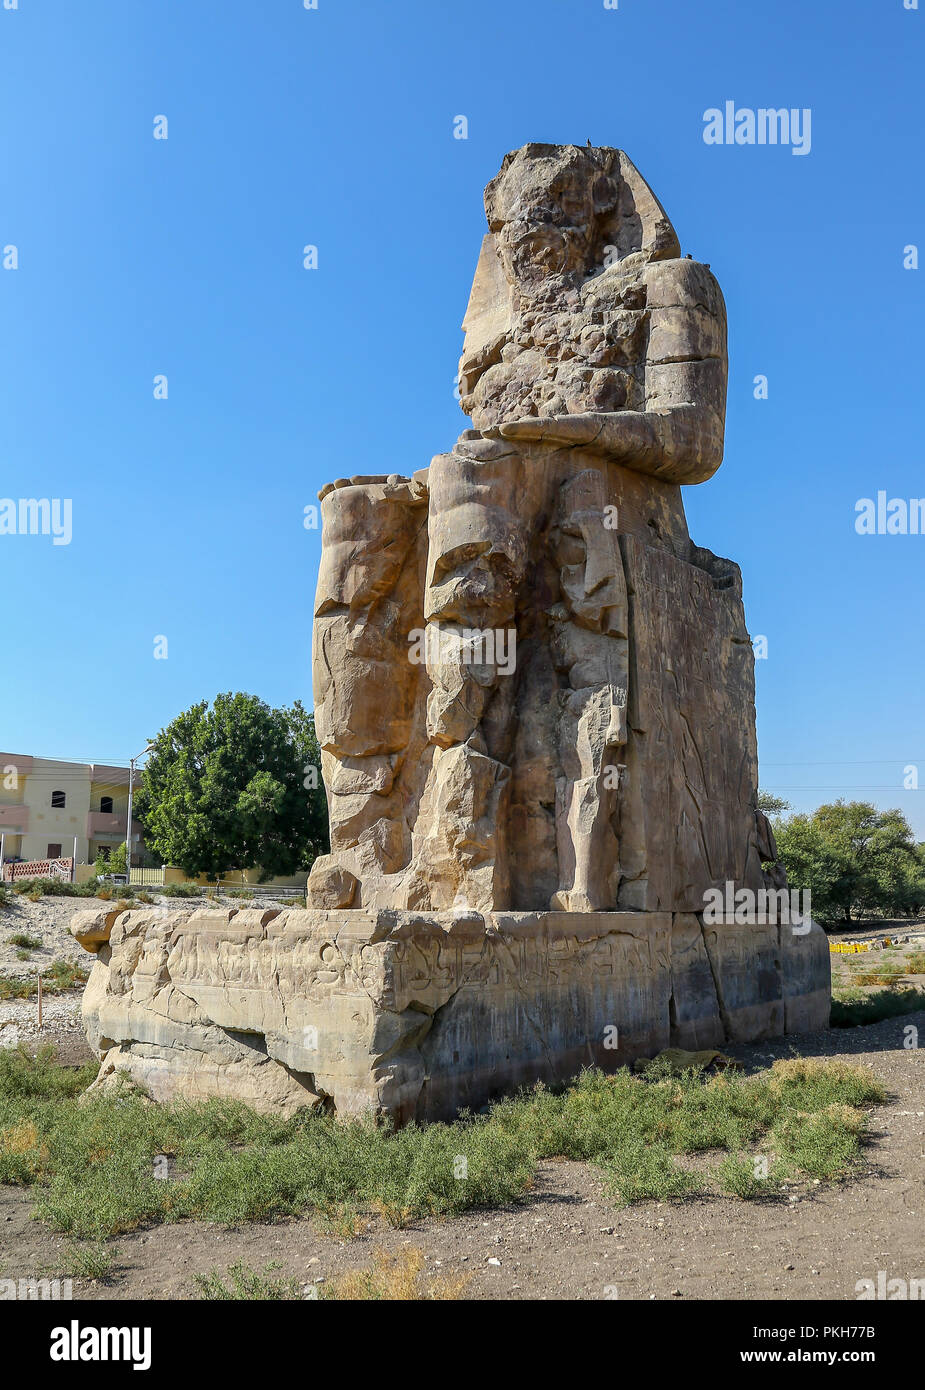 The Colossi of Memnon, two massive stone statues of the Pharaoh Amenhotep III, at the Theban Necropolis at Luxor, Egypt, Africa - Stock Image